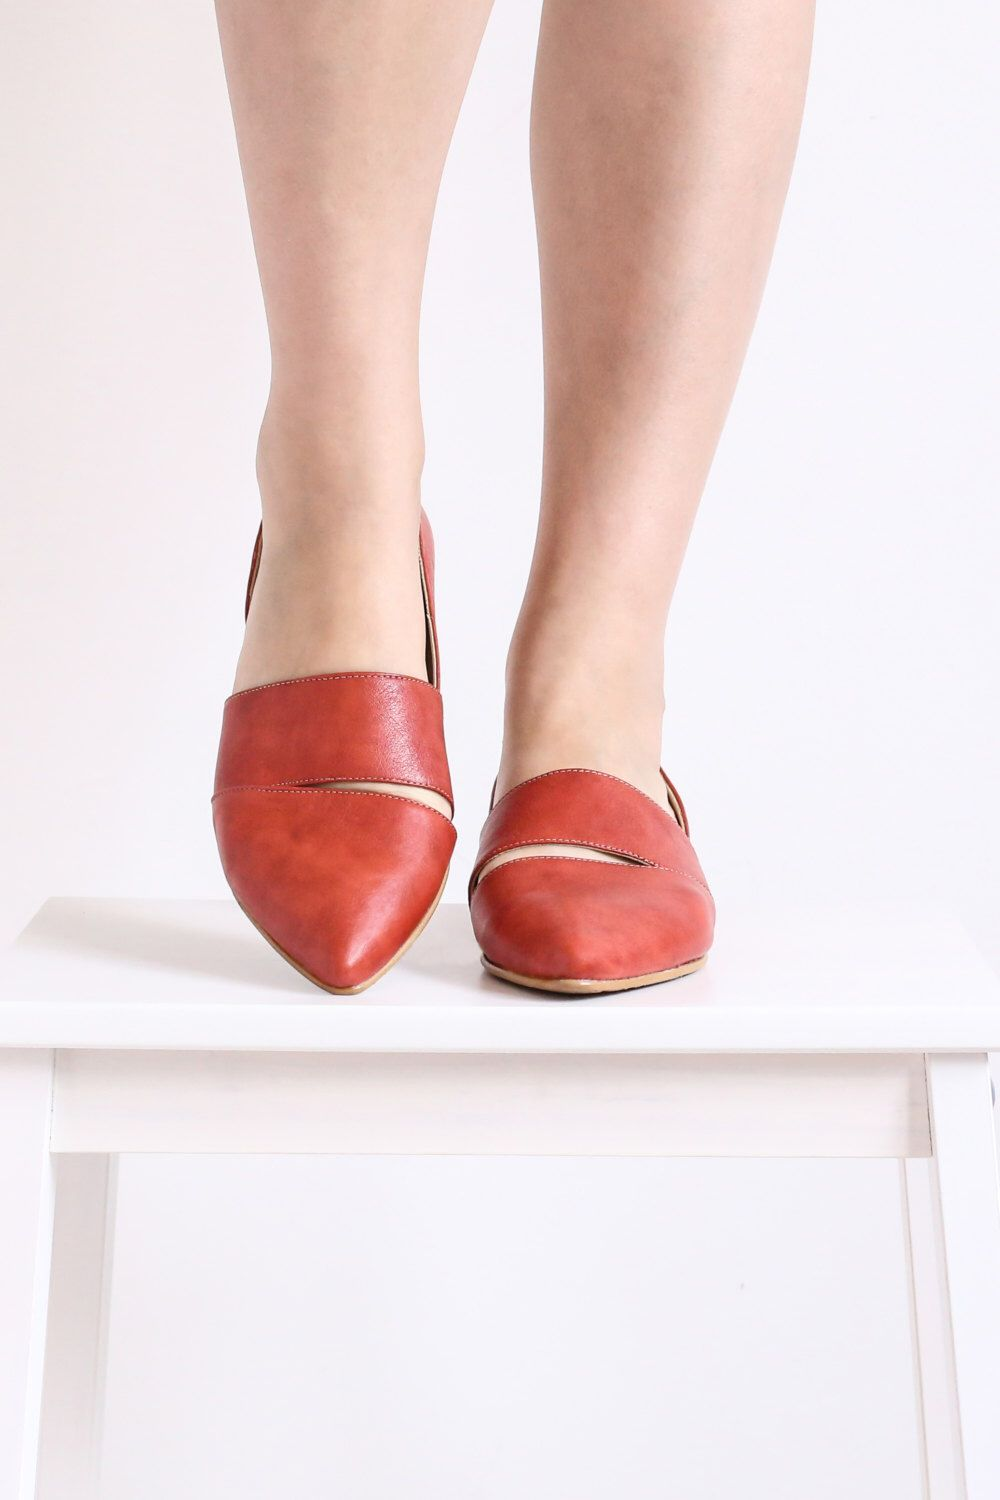 61f0f8948c Women's pointy flats , Red rose leather Pointed toe Slip-Ons shoes, handmade  ADIKILAV